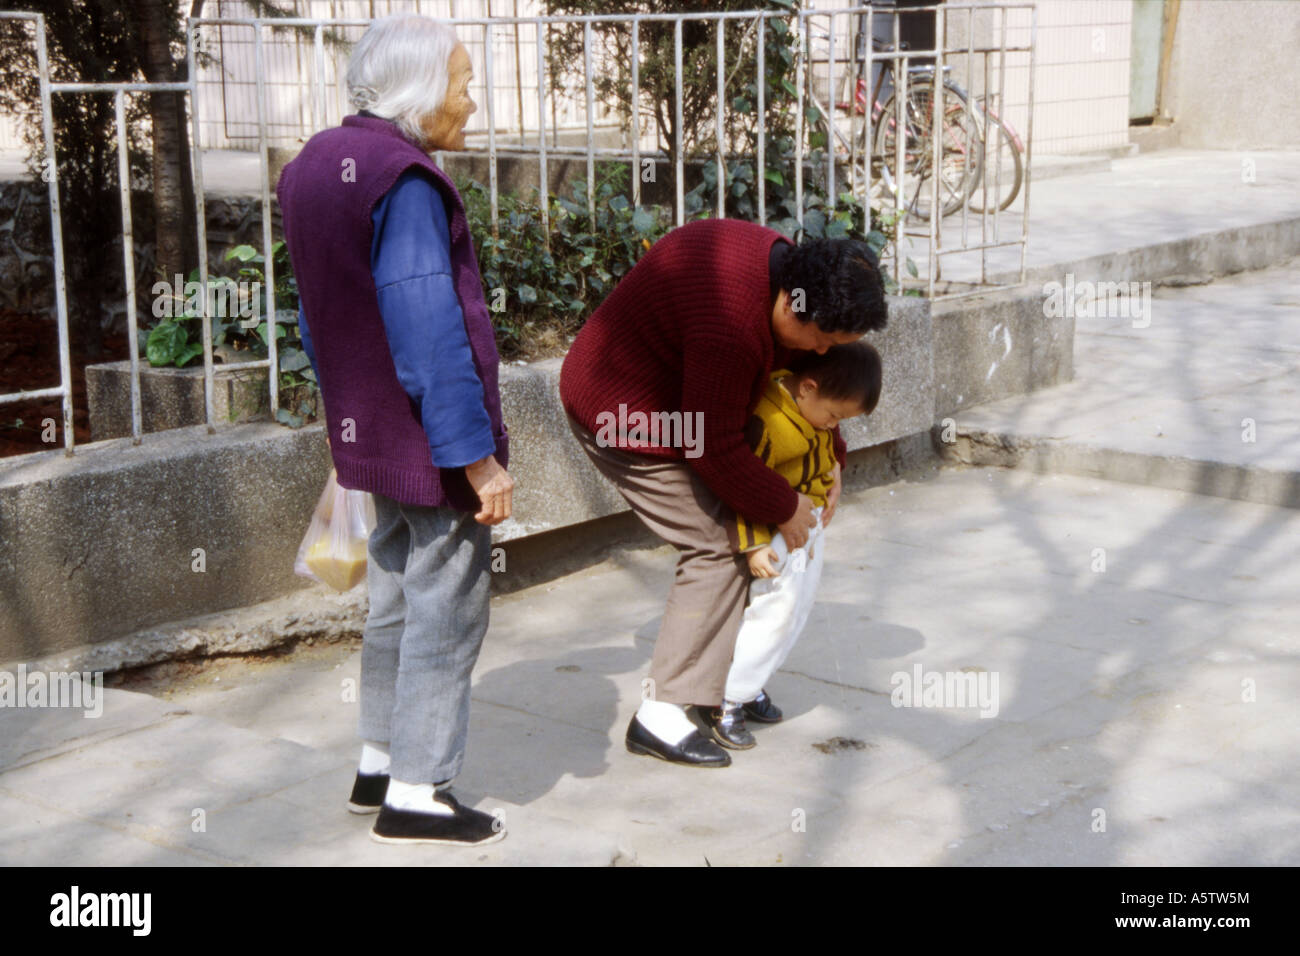 PEE ON ALLSITUATION IN CHINA Grandmother looks on as her daughter helps her young son to urinate in the  street,